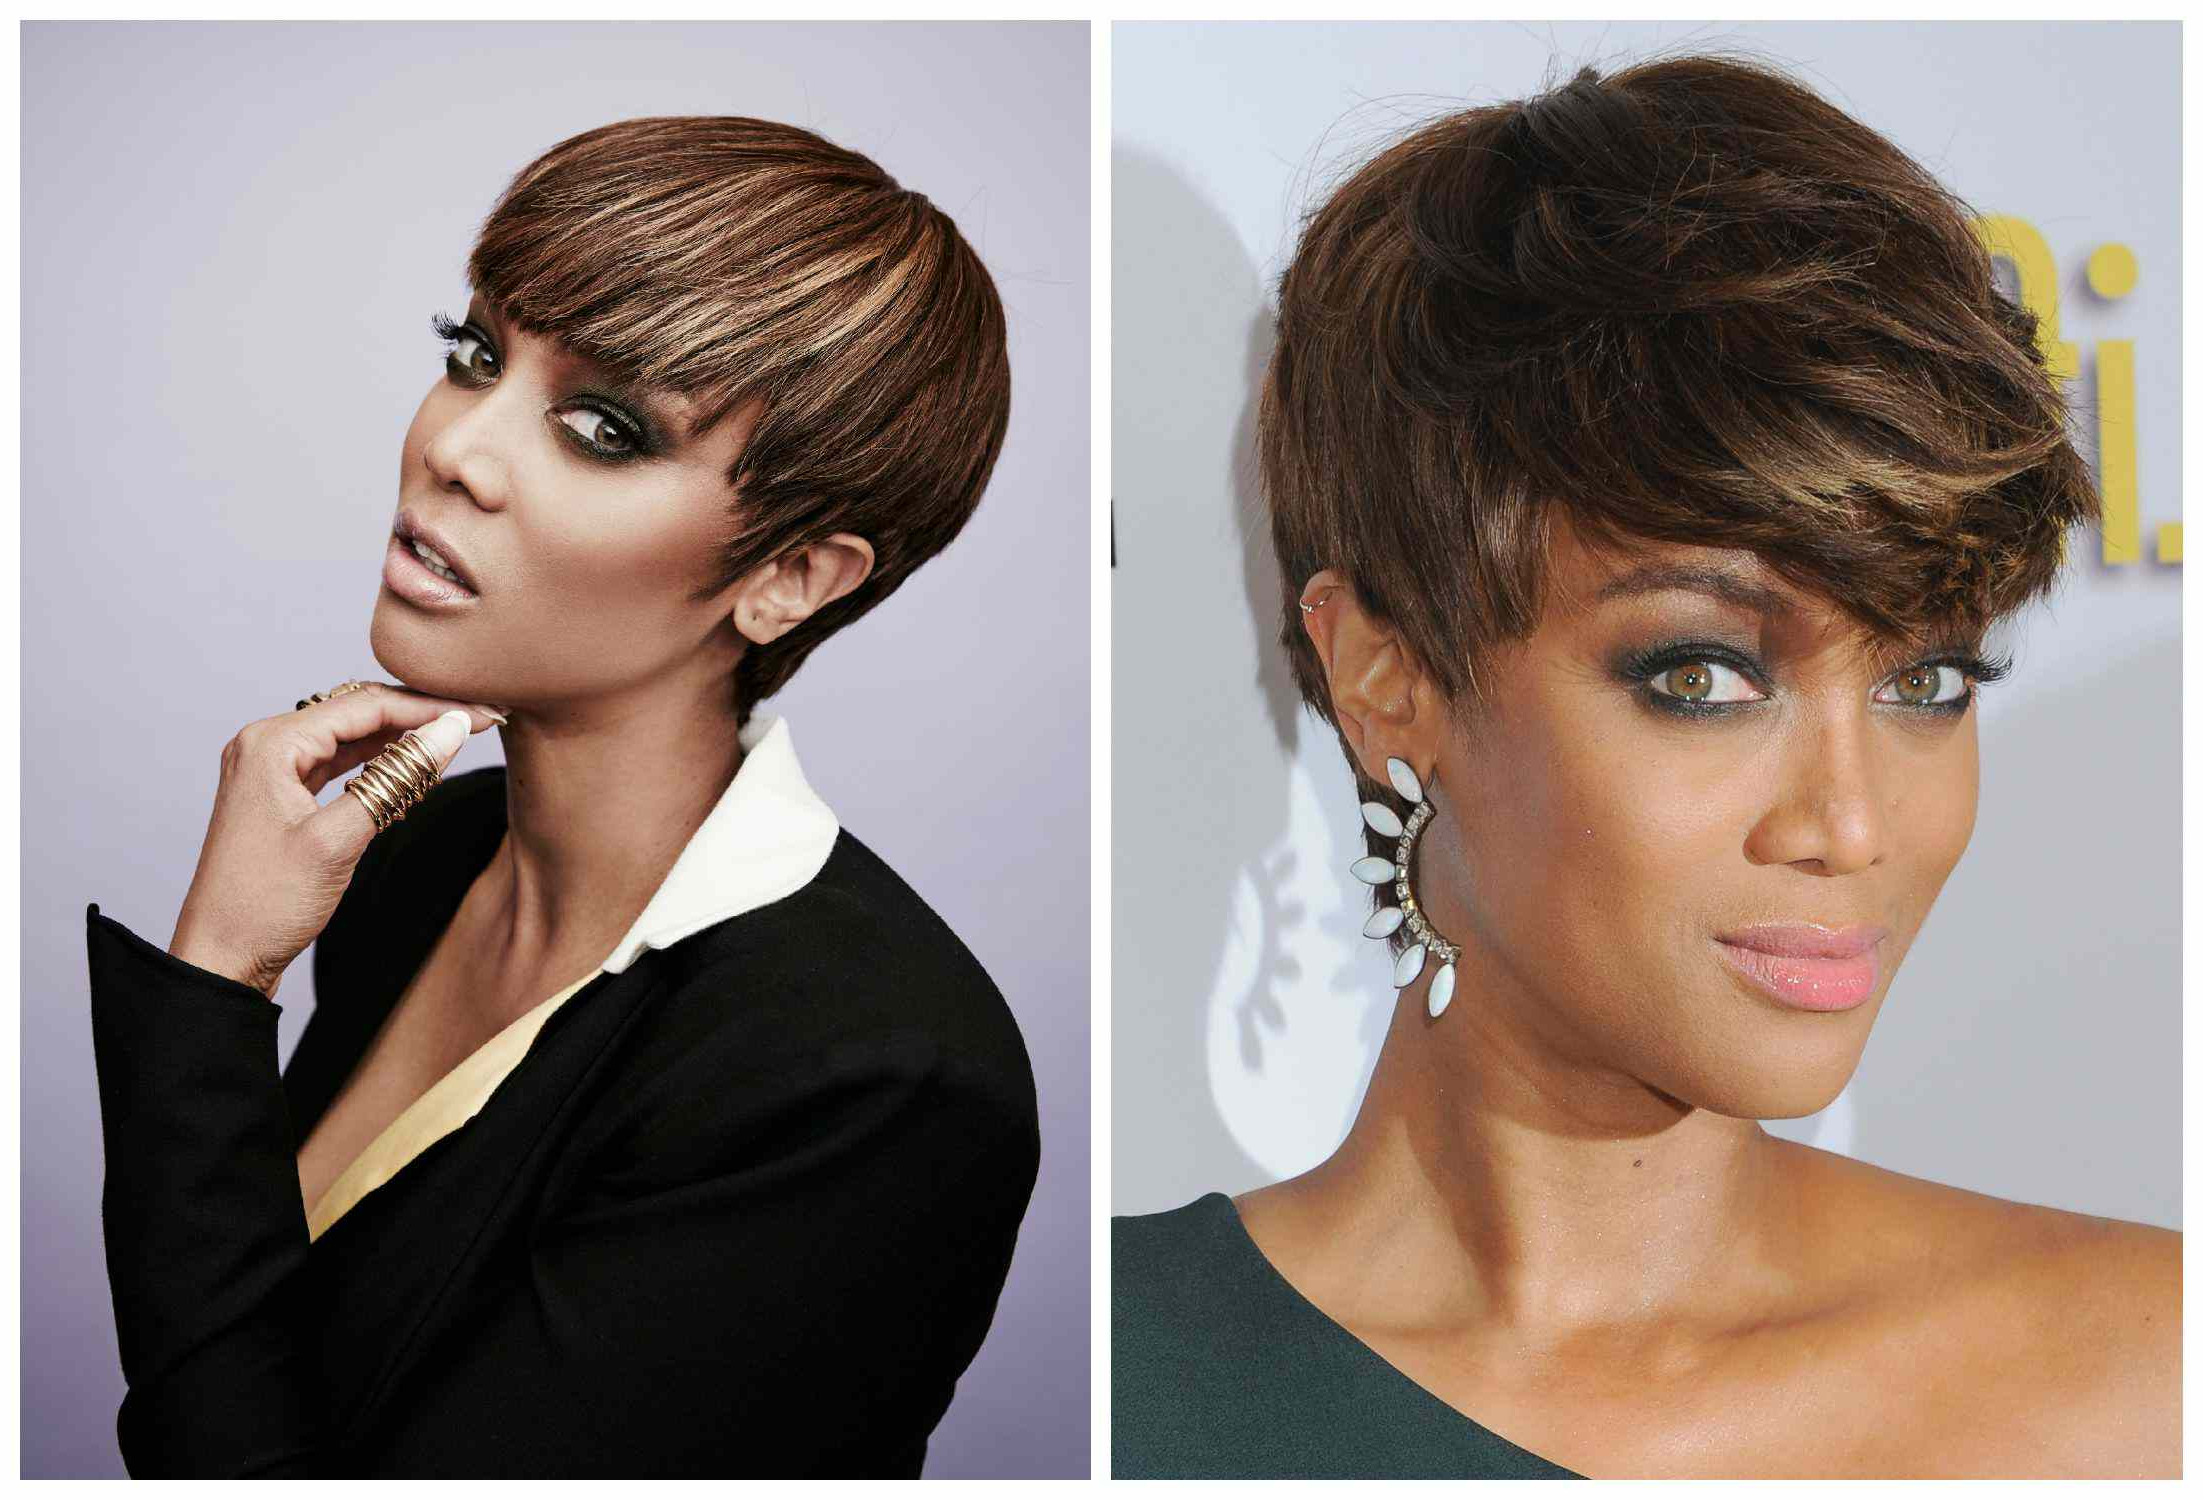 Pixie Hairstyles: The Best Super Short Cuts For Tyra Banks Short Hairstyles (View 16 of 25)